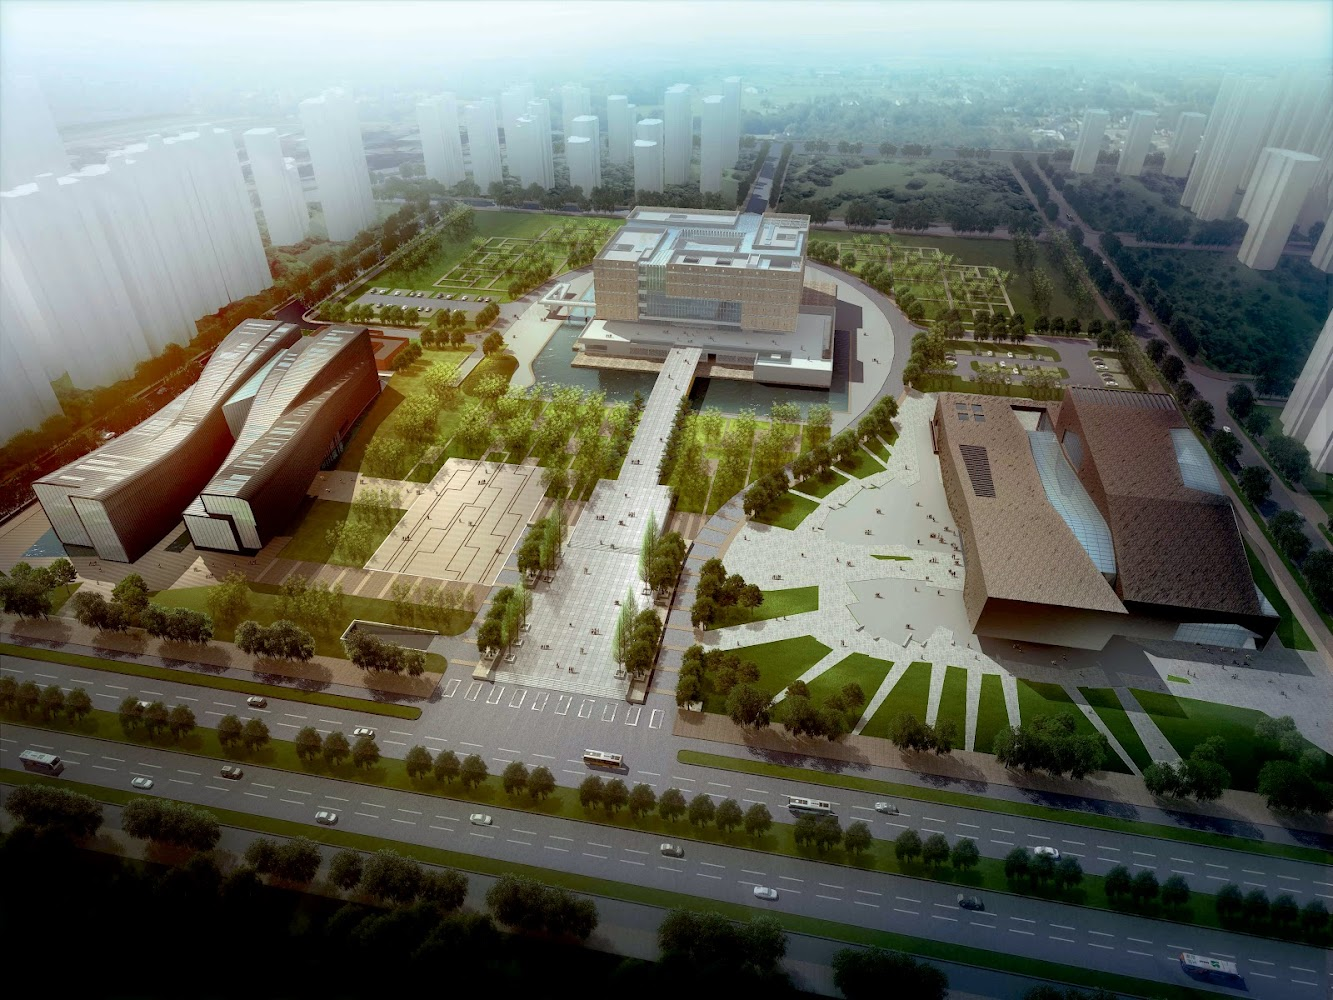 Anhui Provincial Art Museum by Rta Office